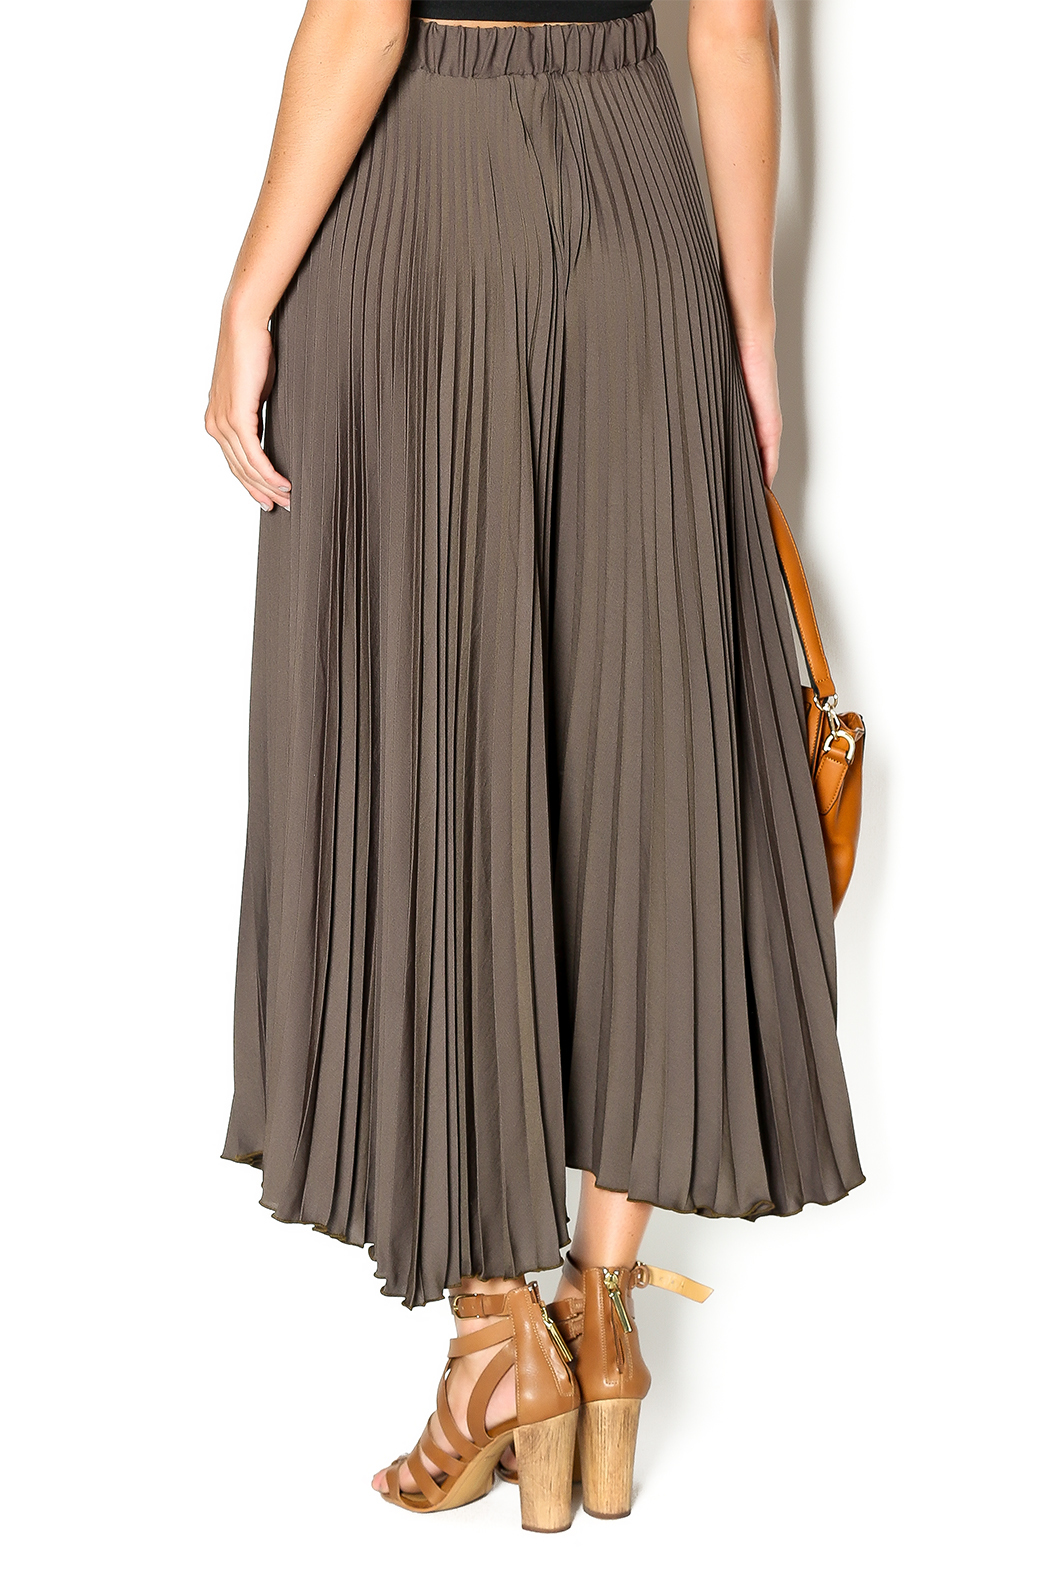 Pinkyotto Fullest Pleated Palazzo Pants From Nolita